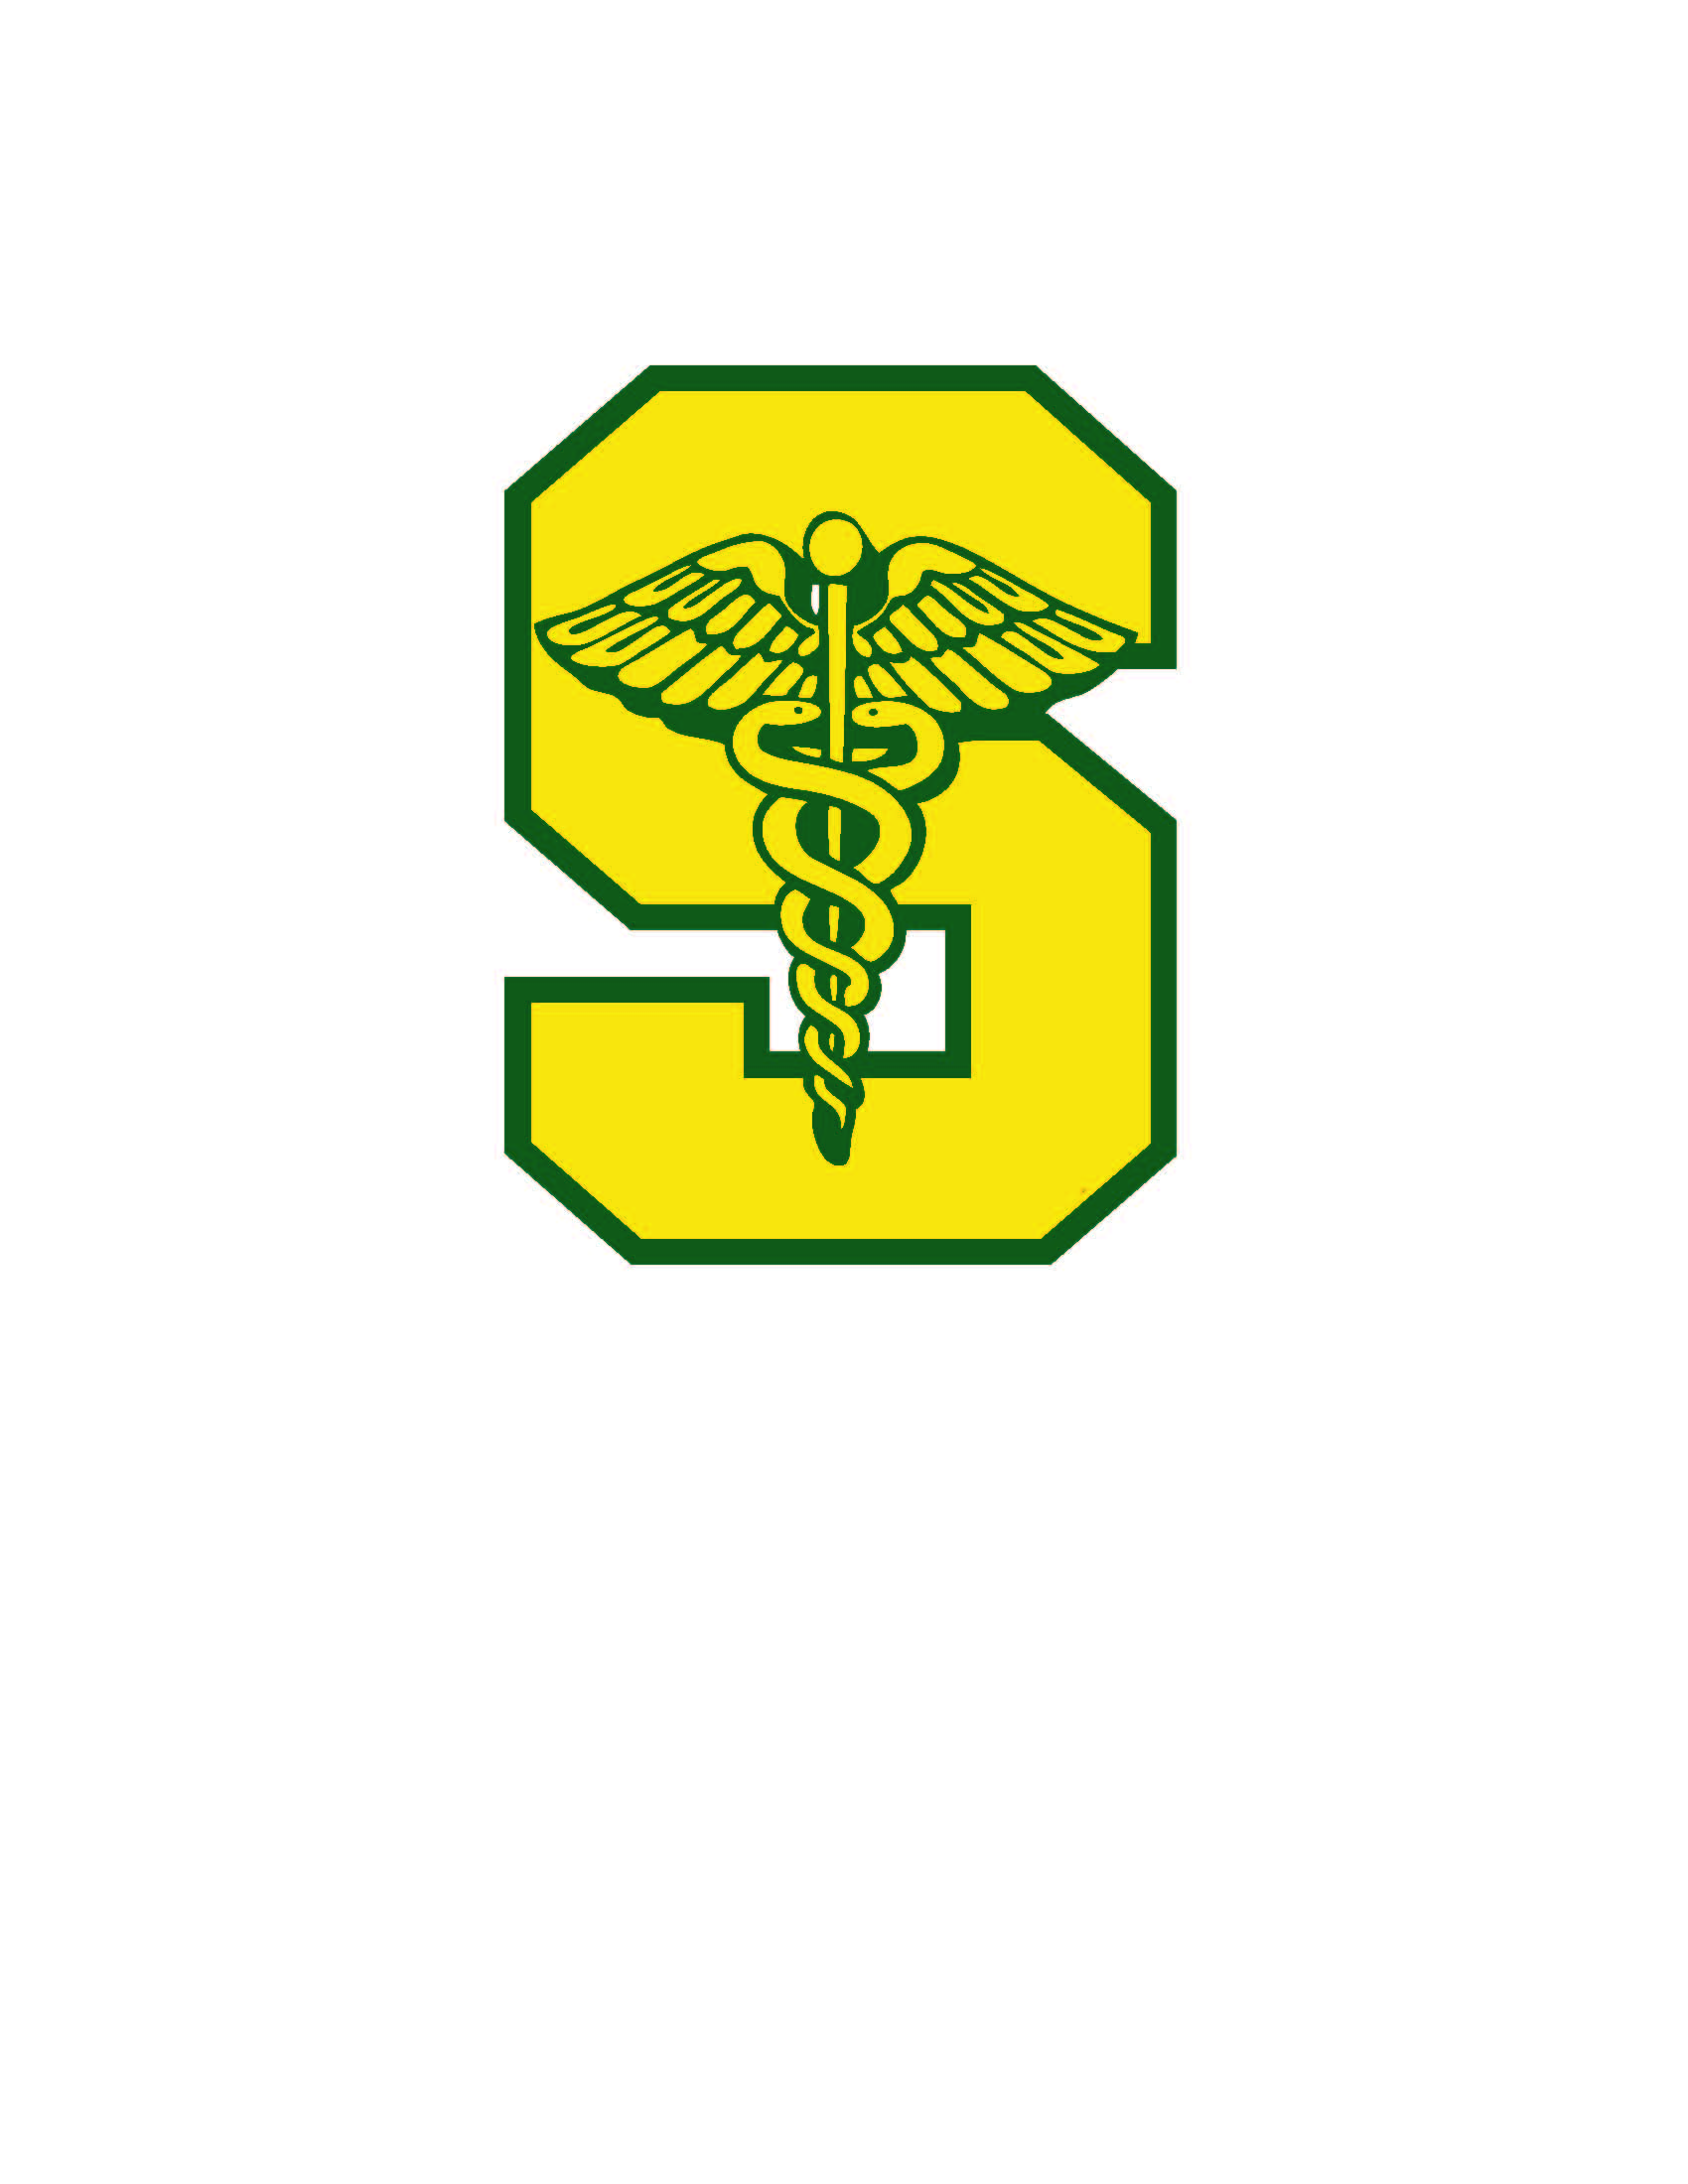 Smith logo with a medic sign